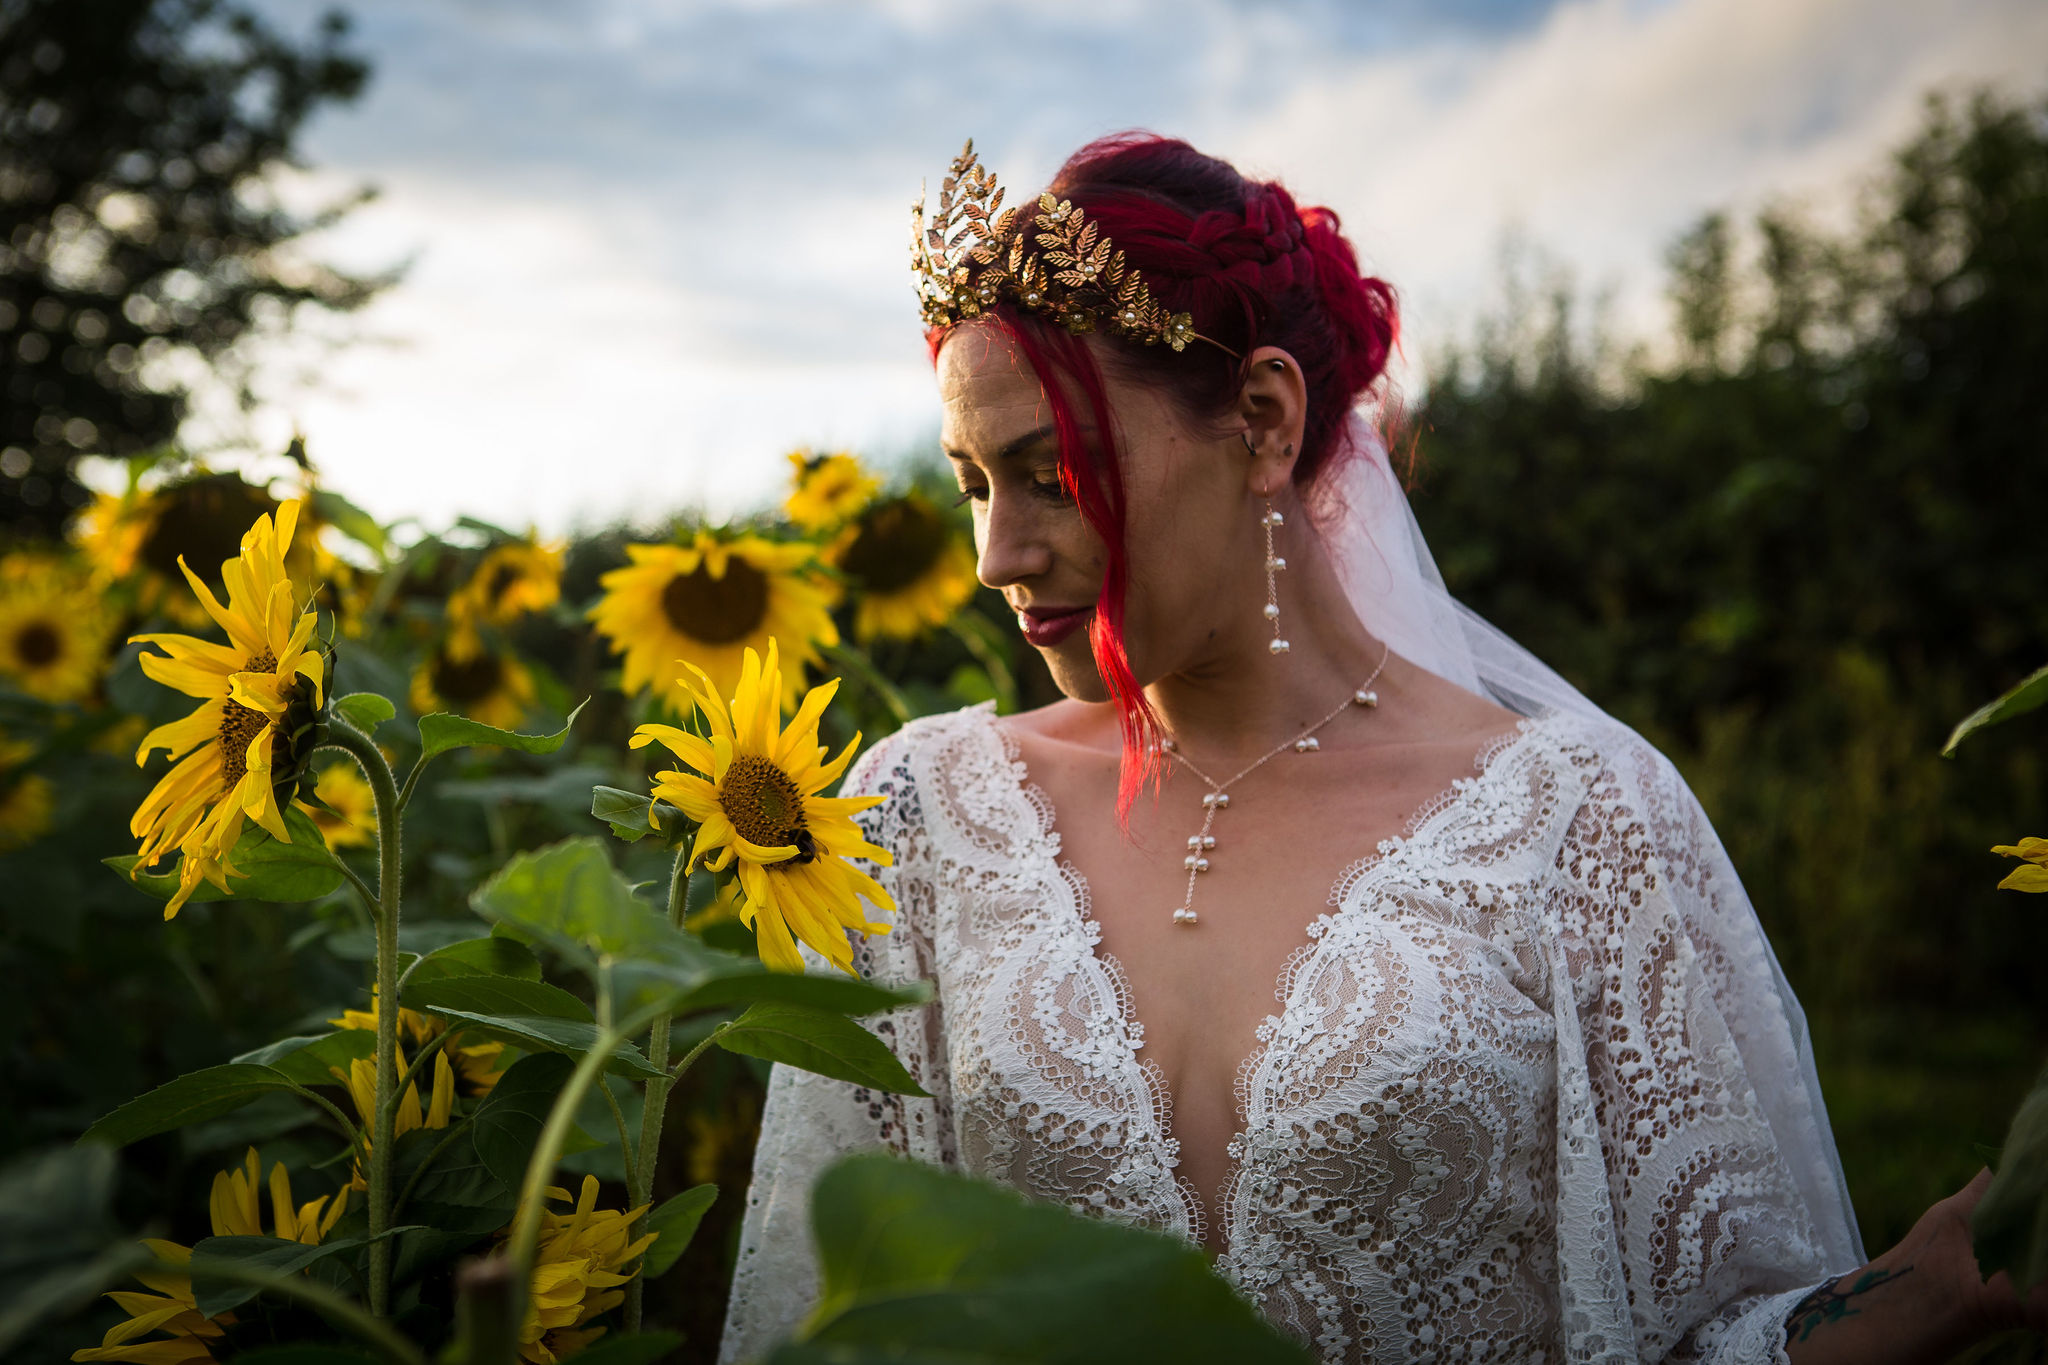 sunflower themed wedding - unconventional wedding - sunflower wedding - autumn wedding - alternative wedding planning - unique wedding accessories - pearl bridal jewellery